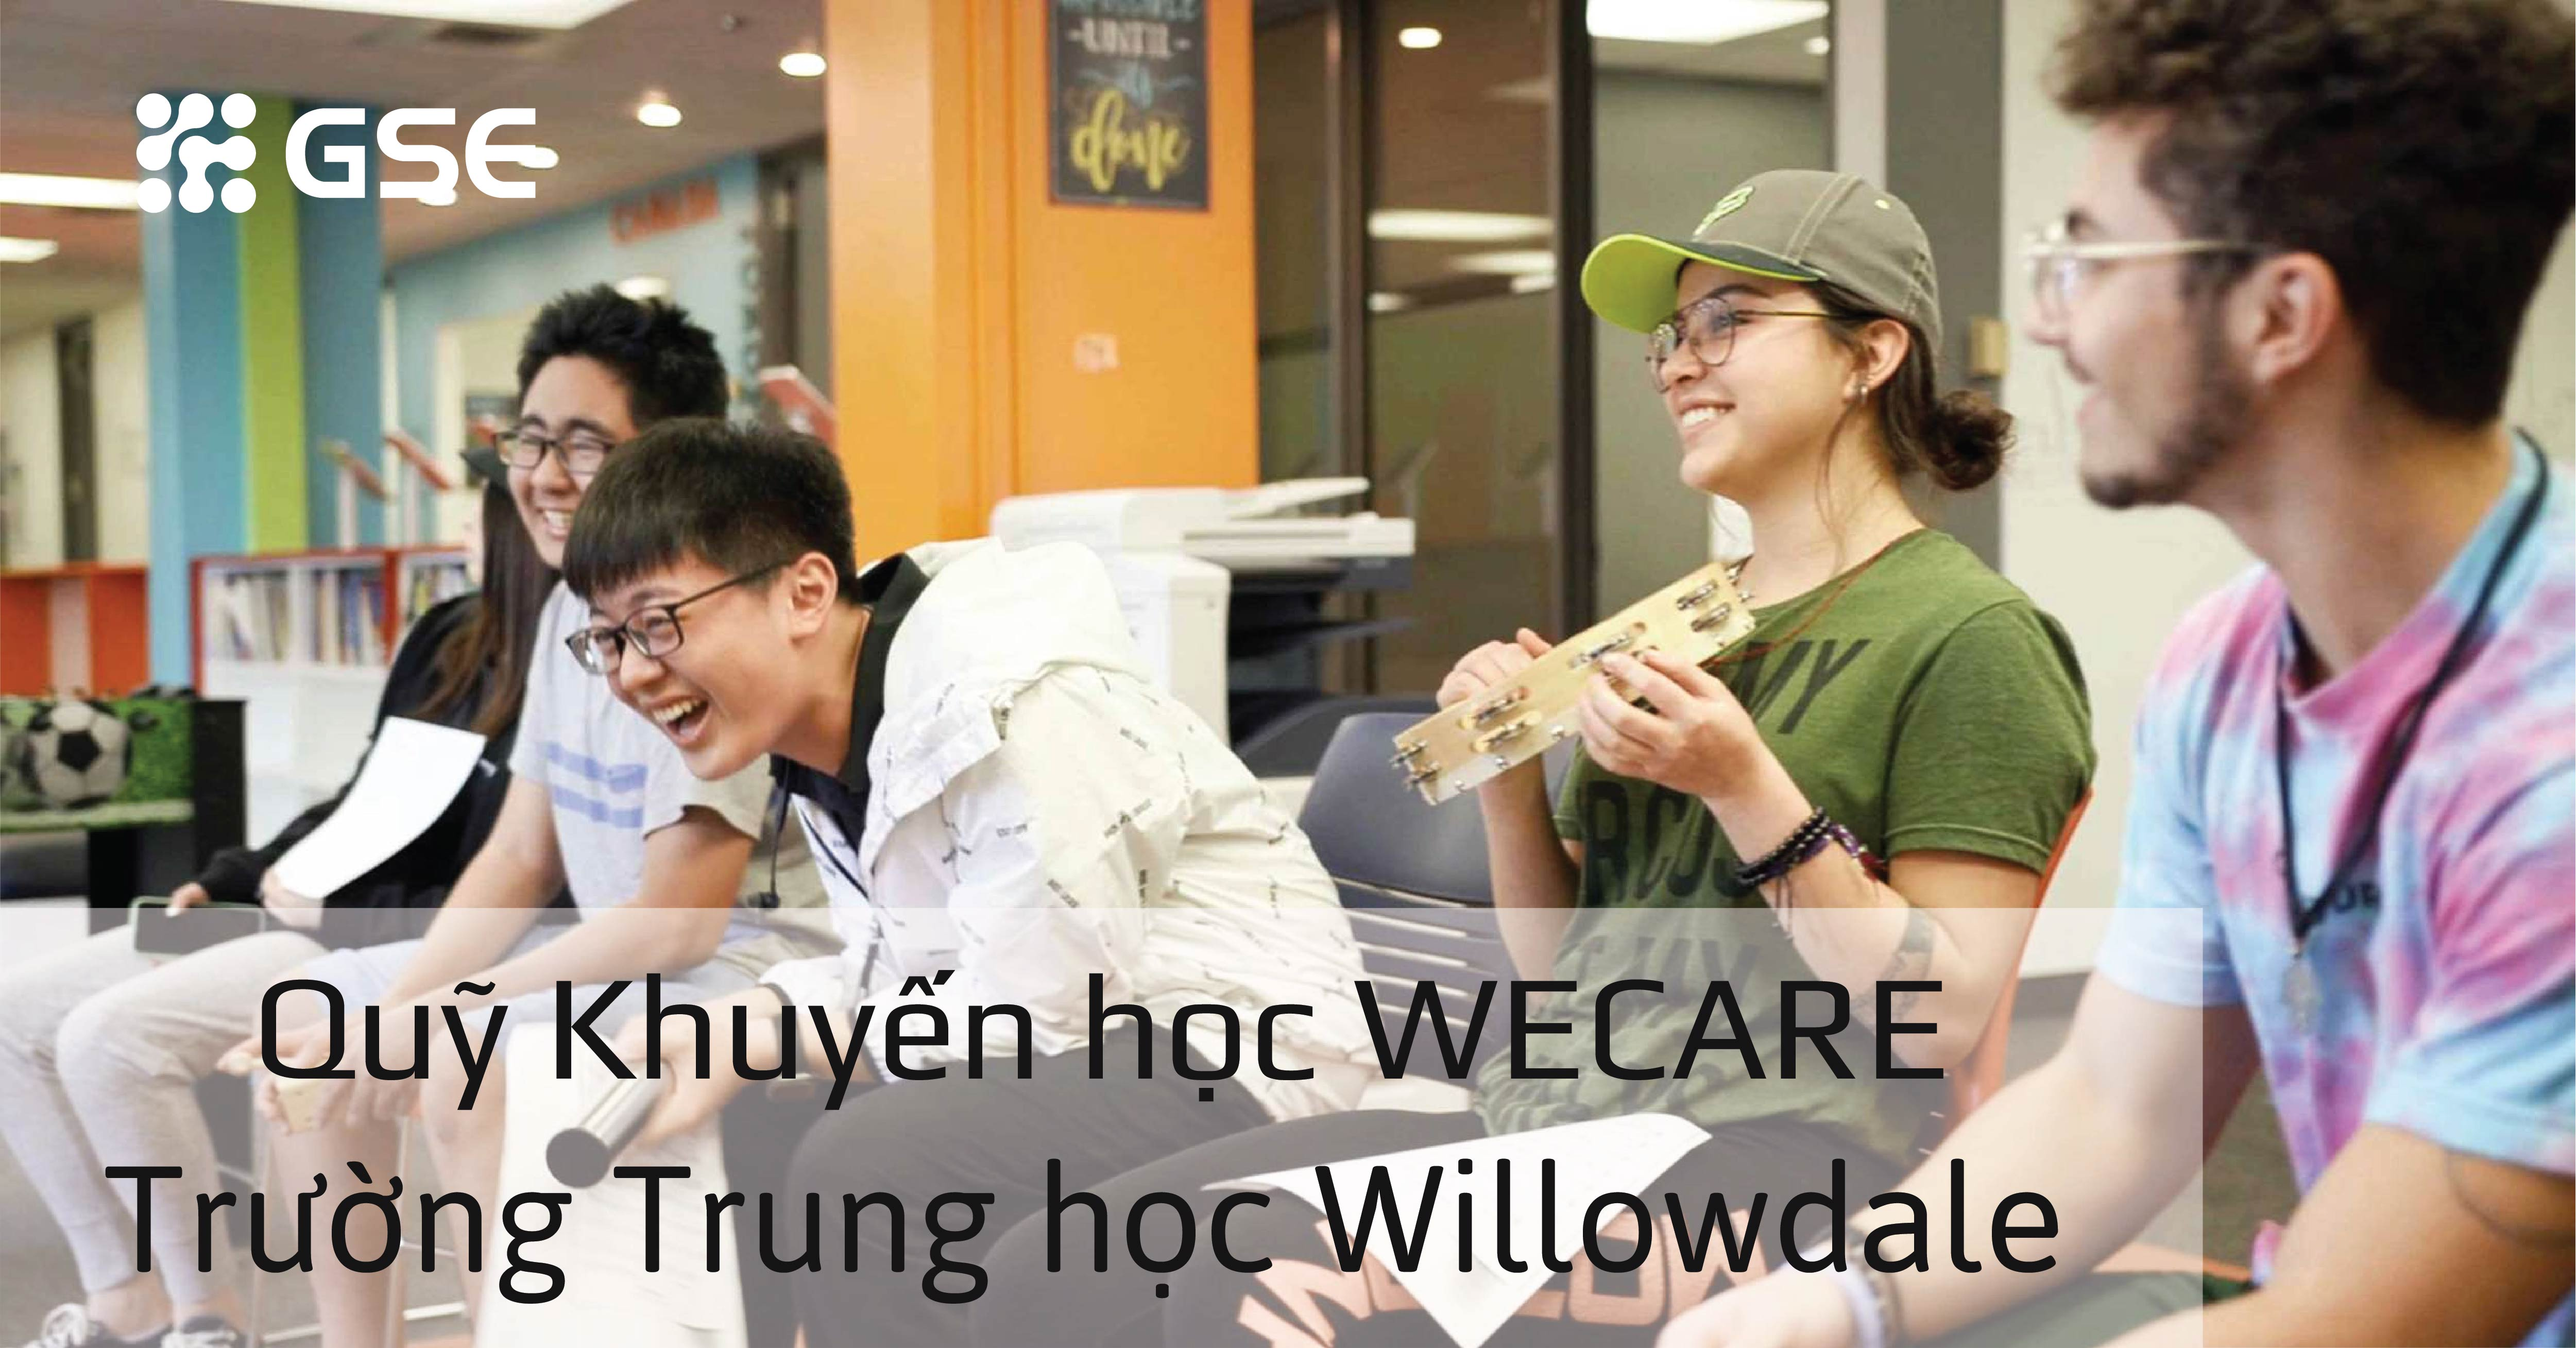 truong trung hoc willowdale 05 - Quỹ Khuyến học WeCare 3,000 CAD cùng trường Trung học Willowdale